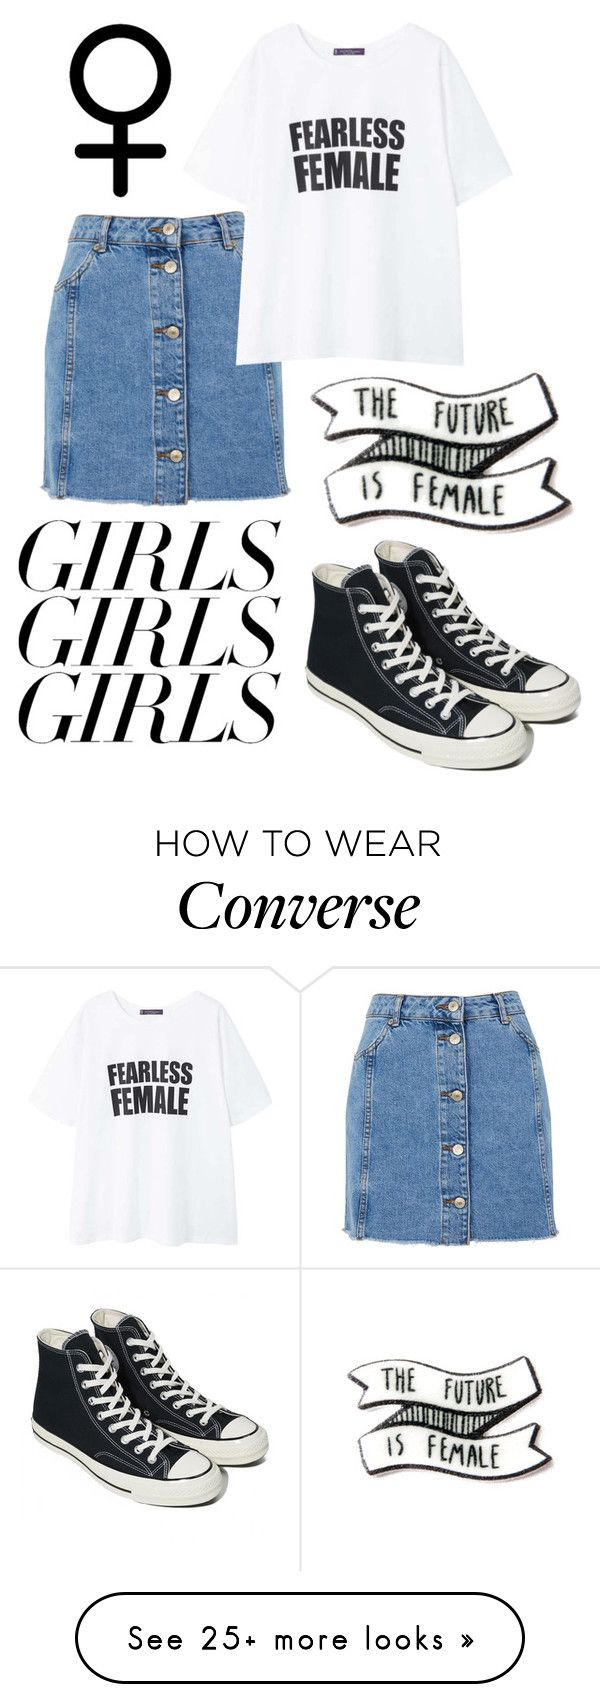 """Untitled #88"" by chanc3 on Polyvore featuring Topshop, MANGO, Converse, womensHistoryMonth, pressforprogress and GirlPride"